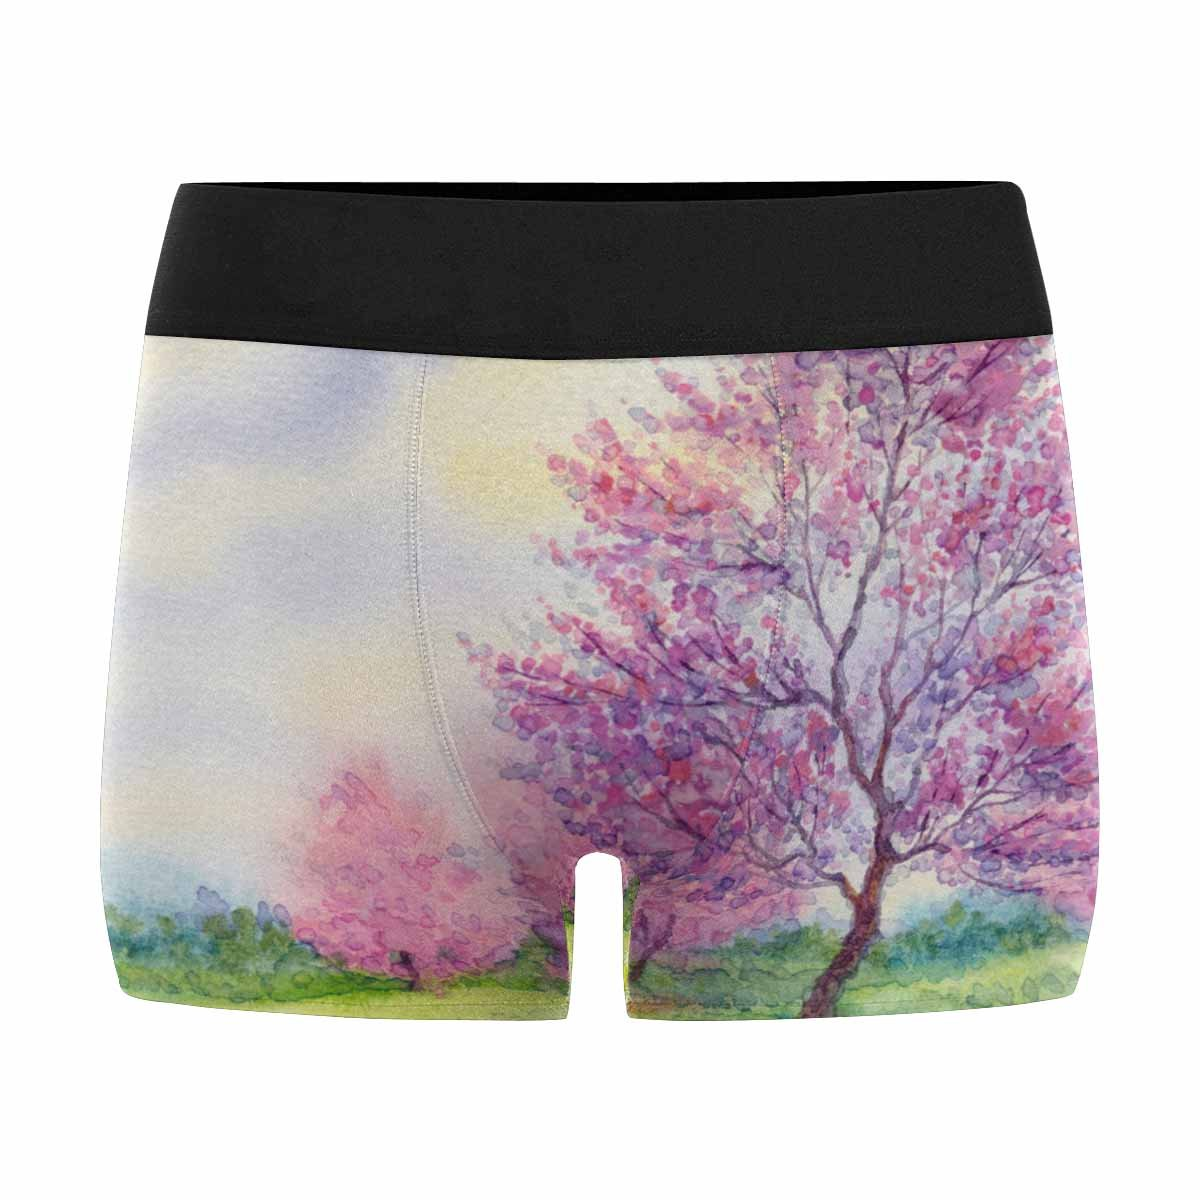 INTERESTPRINT Custom Mens All-Over Print Boxer Briefs Watercolor Spring Landscape Flowering Tree in Field XS-3XL